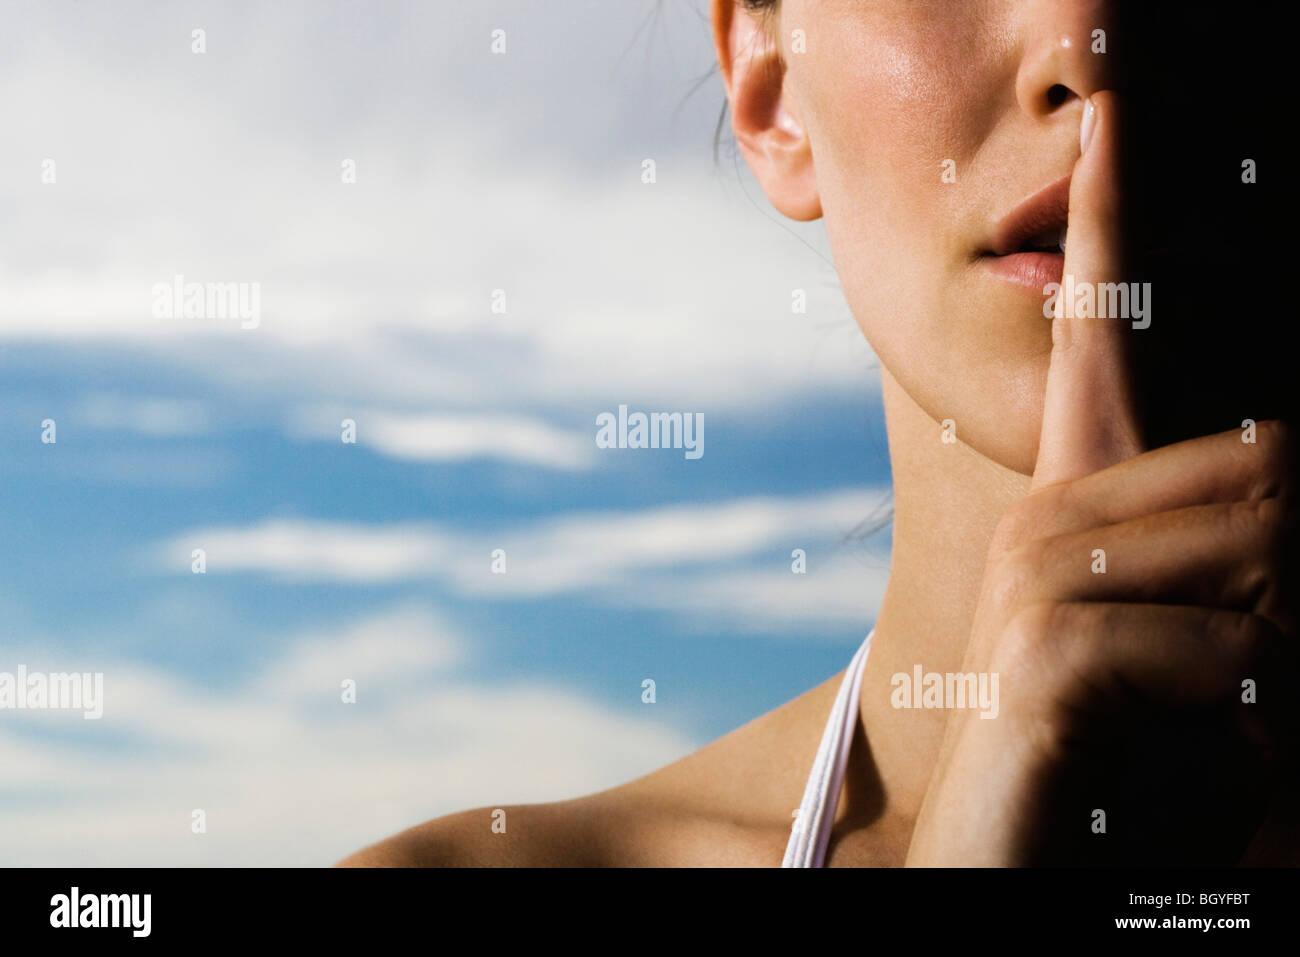 Woman holding finger on lips in silent gesture, cropped - Stock Image